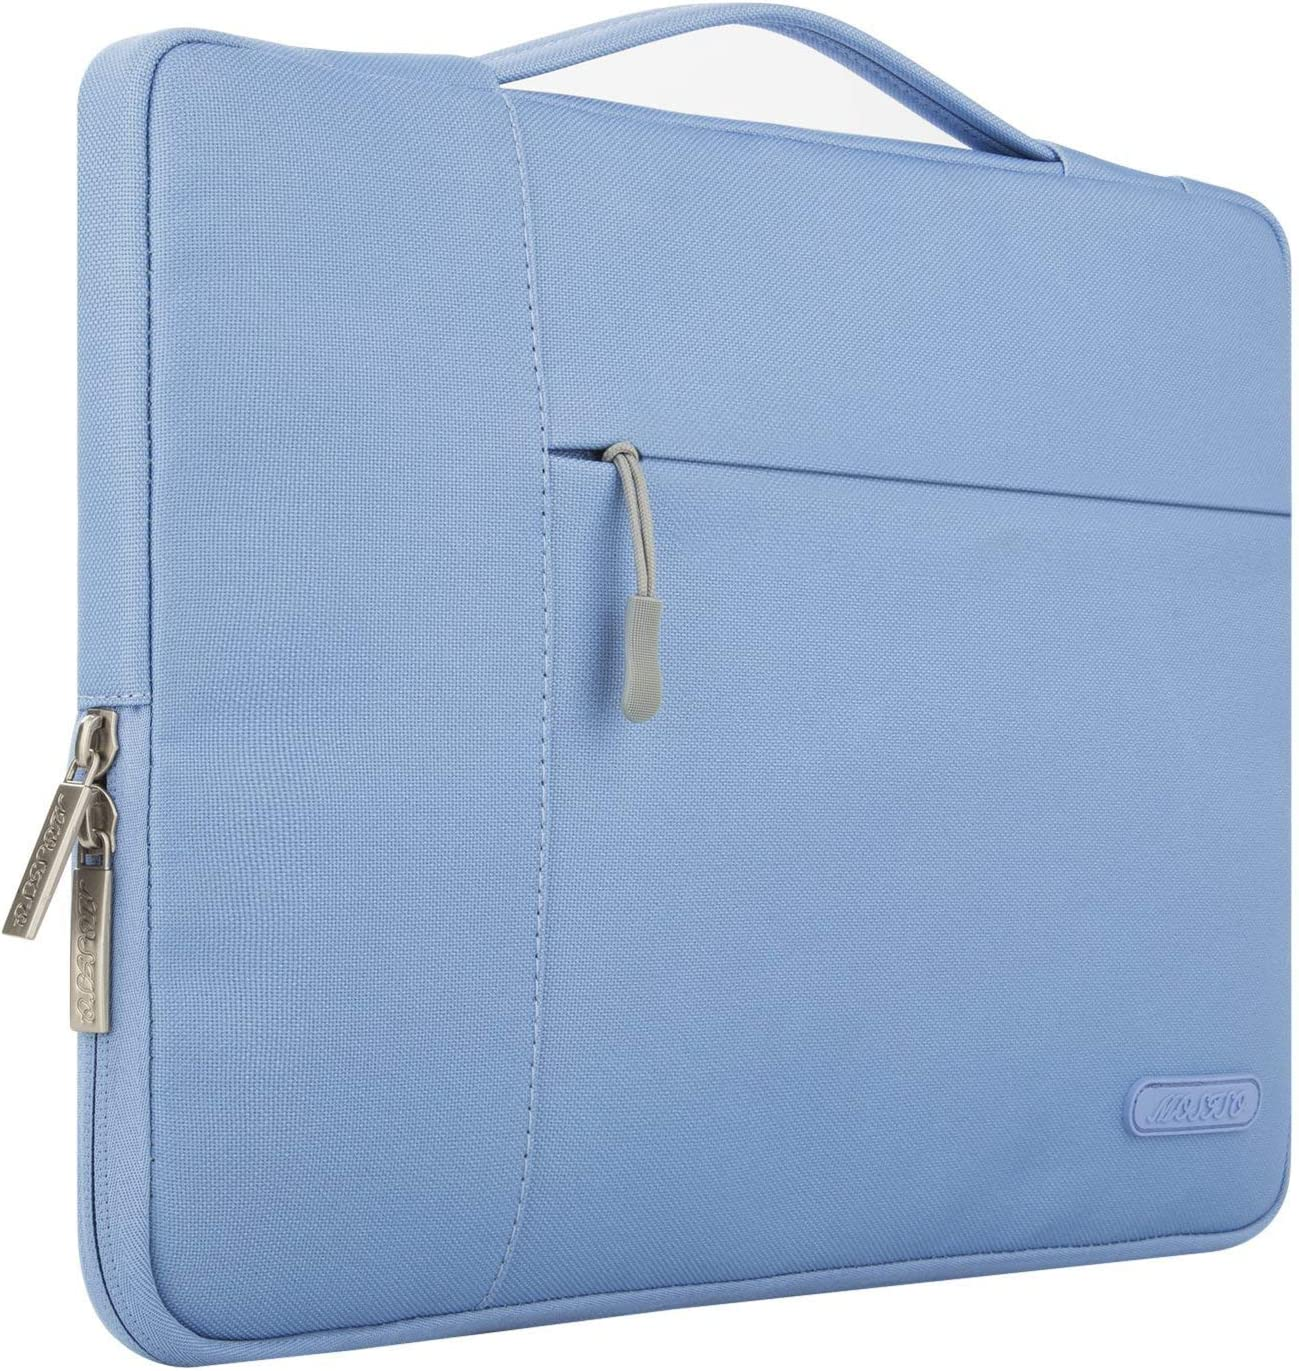 MOSISO Laptop Sleeve Compatible with MacBook Pro 16 inch, 15 15.4 15.6 inch Dell Lenovo HP Asus Acer Samsung Sony Chromebook,Polyester Multifunctional Briefcase Carrying Bag,Serenity Blue